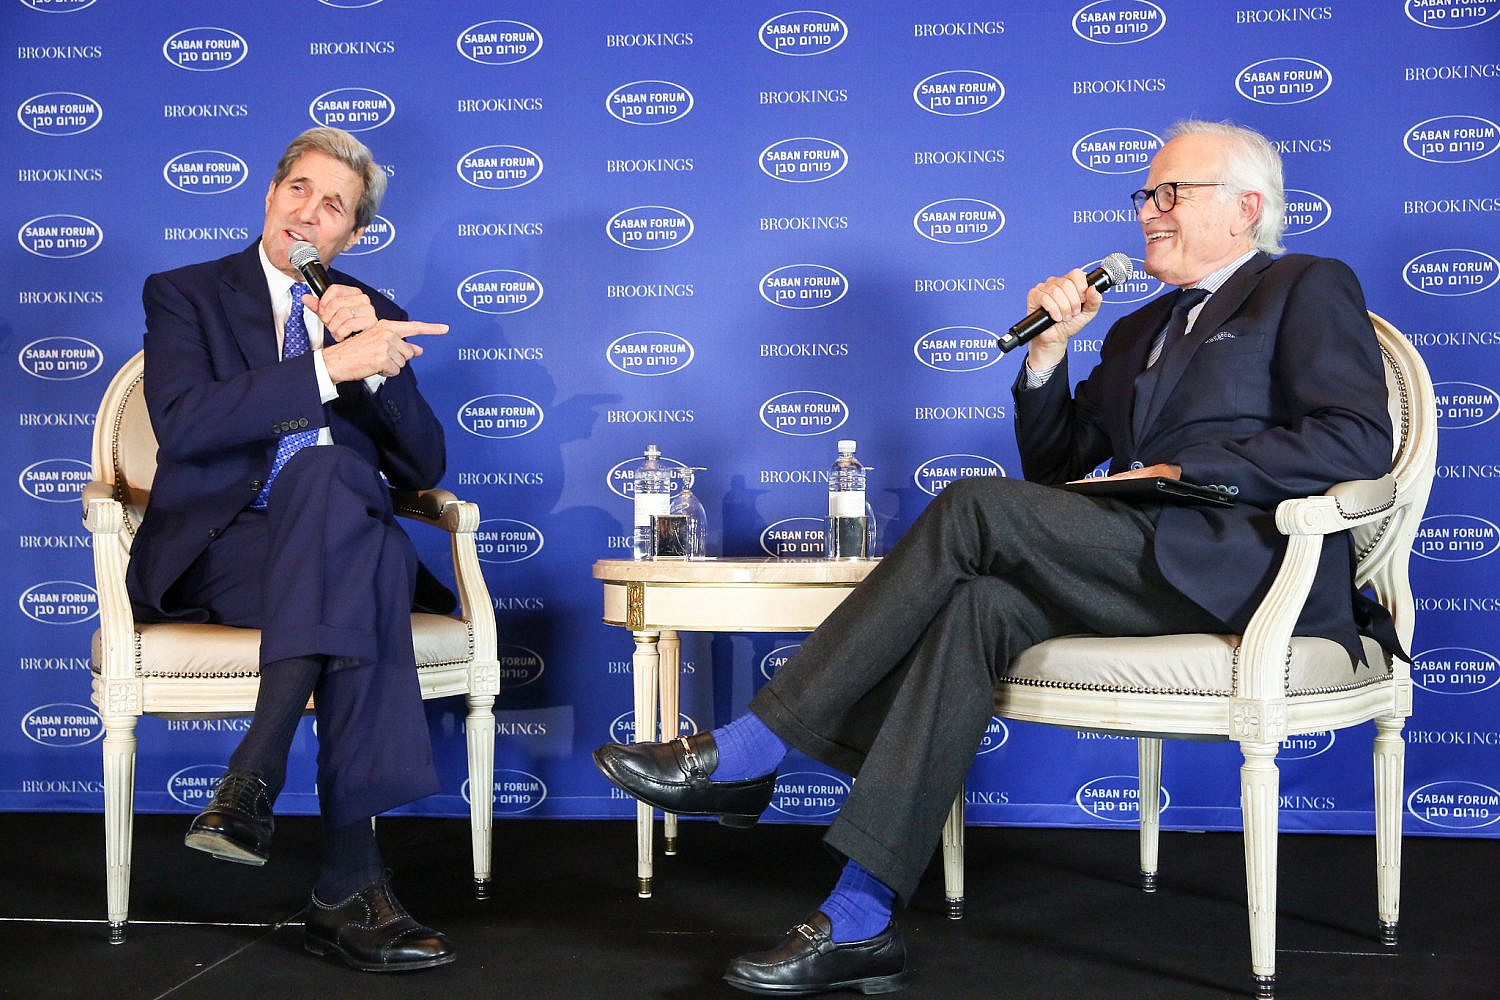 Former U.S. Secretary of State John Kerry in discussion with then-Brookings Executive Vice President Martin Indyk at the 2015 Saban Forum. Dec. 5, 2015 (Ralph Alswang/Brookings Institution/CC BY-NC-ND 2.0)